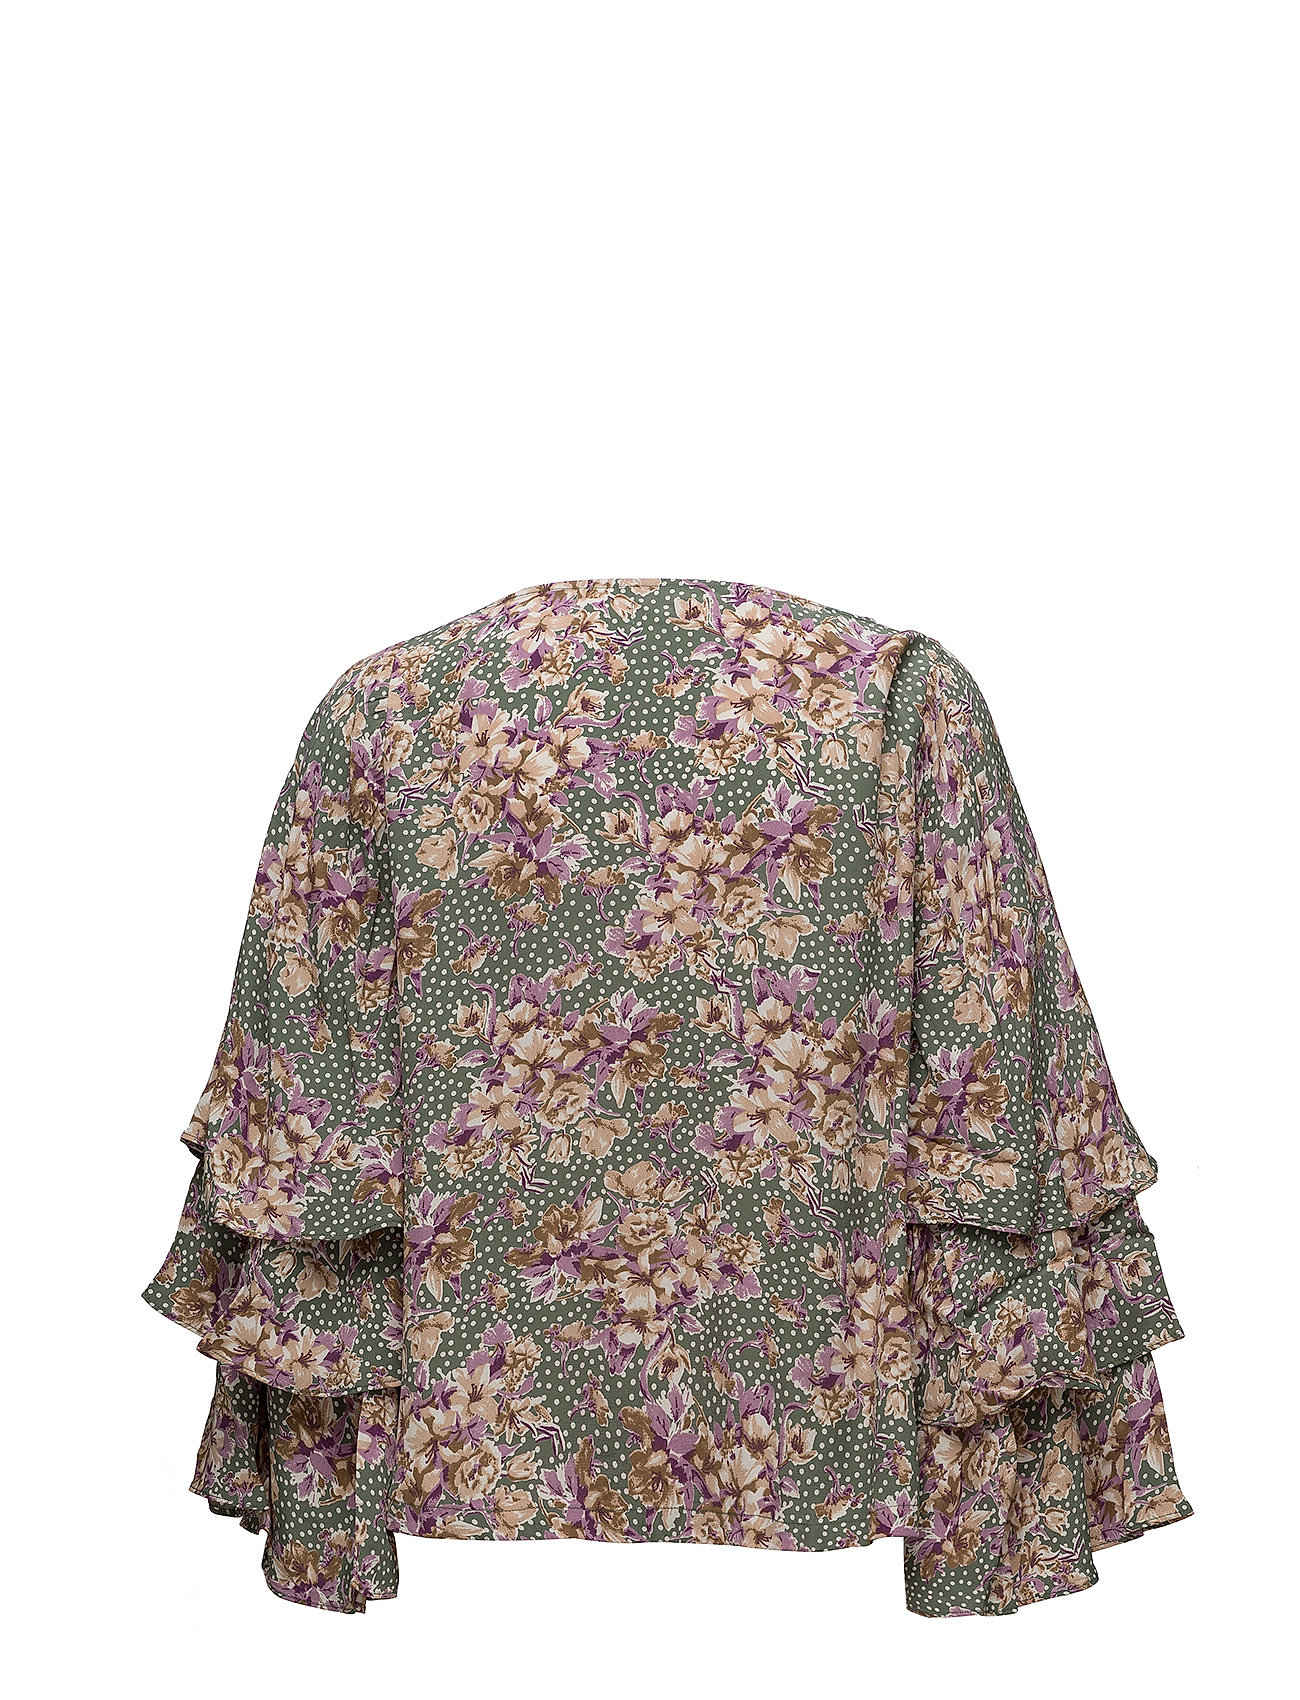 Ti BouquetBy Printed Mo Blouse750 Flared Green redCBQxoW